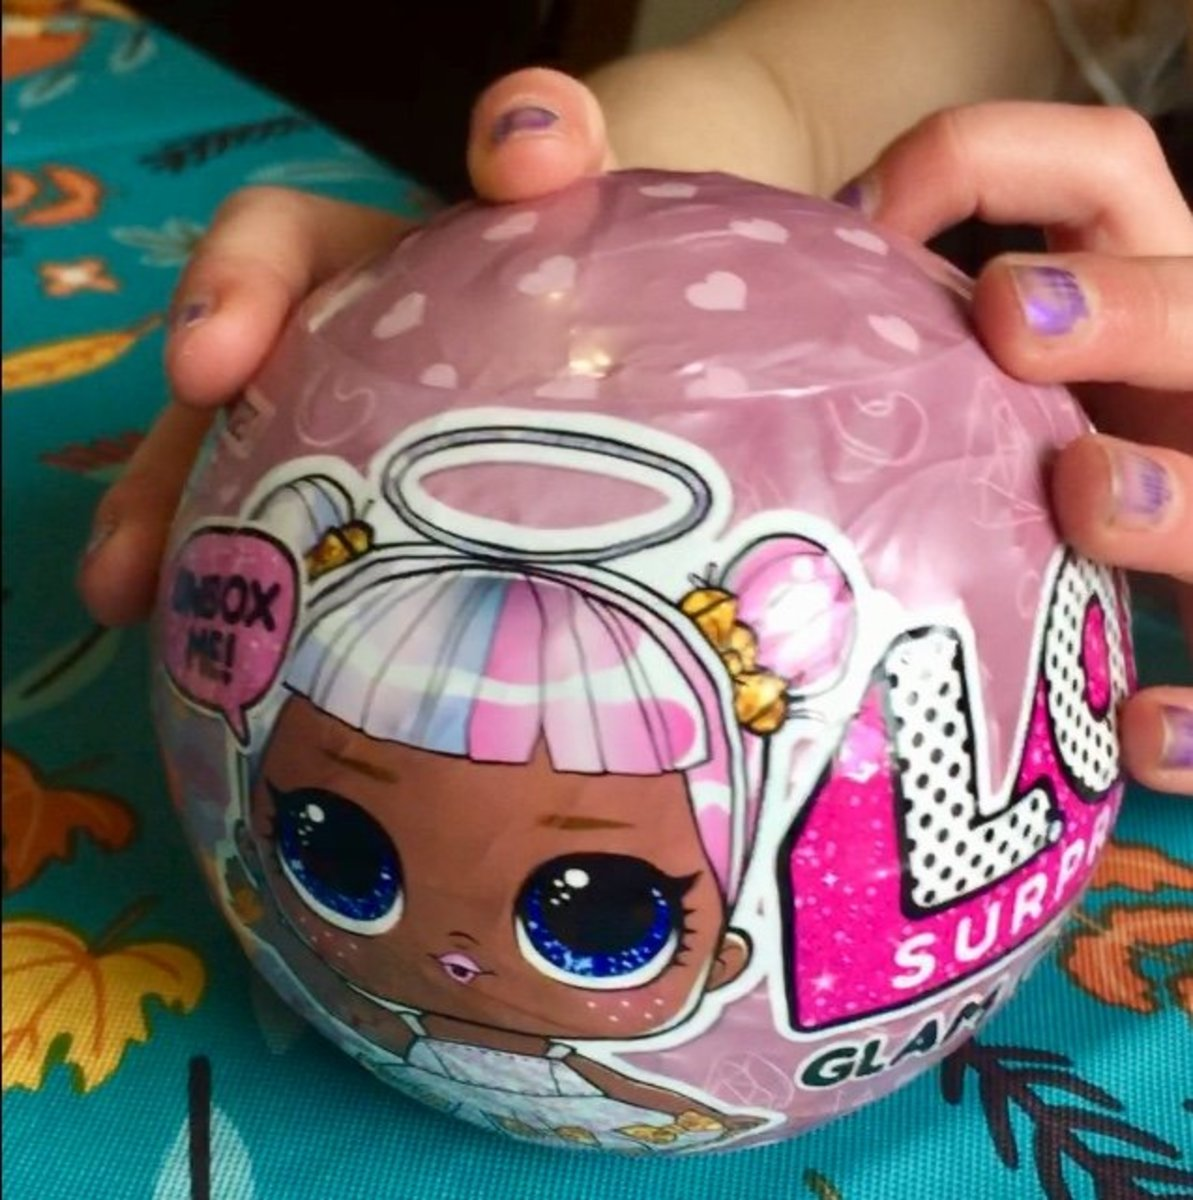 The thrill of unraveling a mystery contributes to the addicting nature of these L.O.L. dolls.